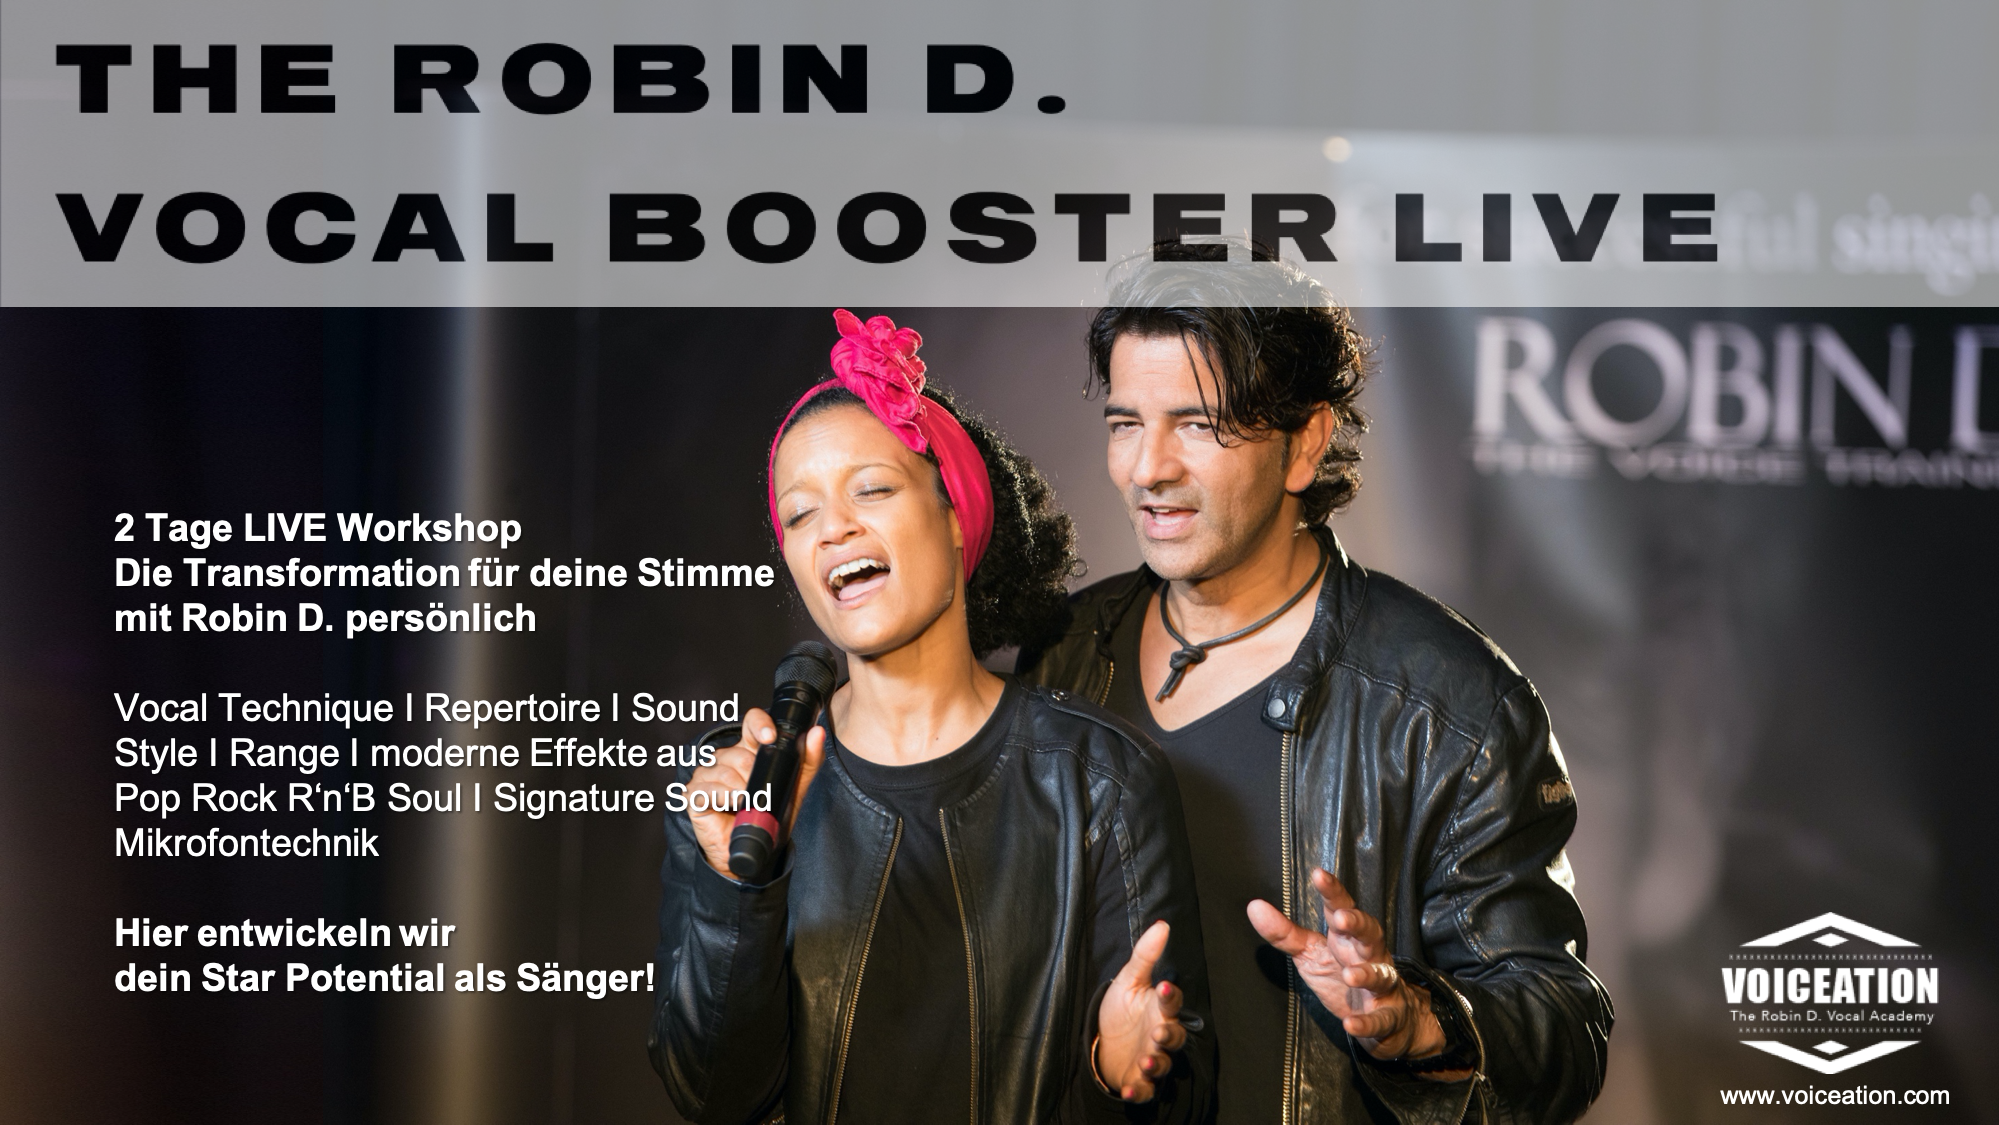 The Robin D. Vocal Booster LIVE